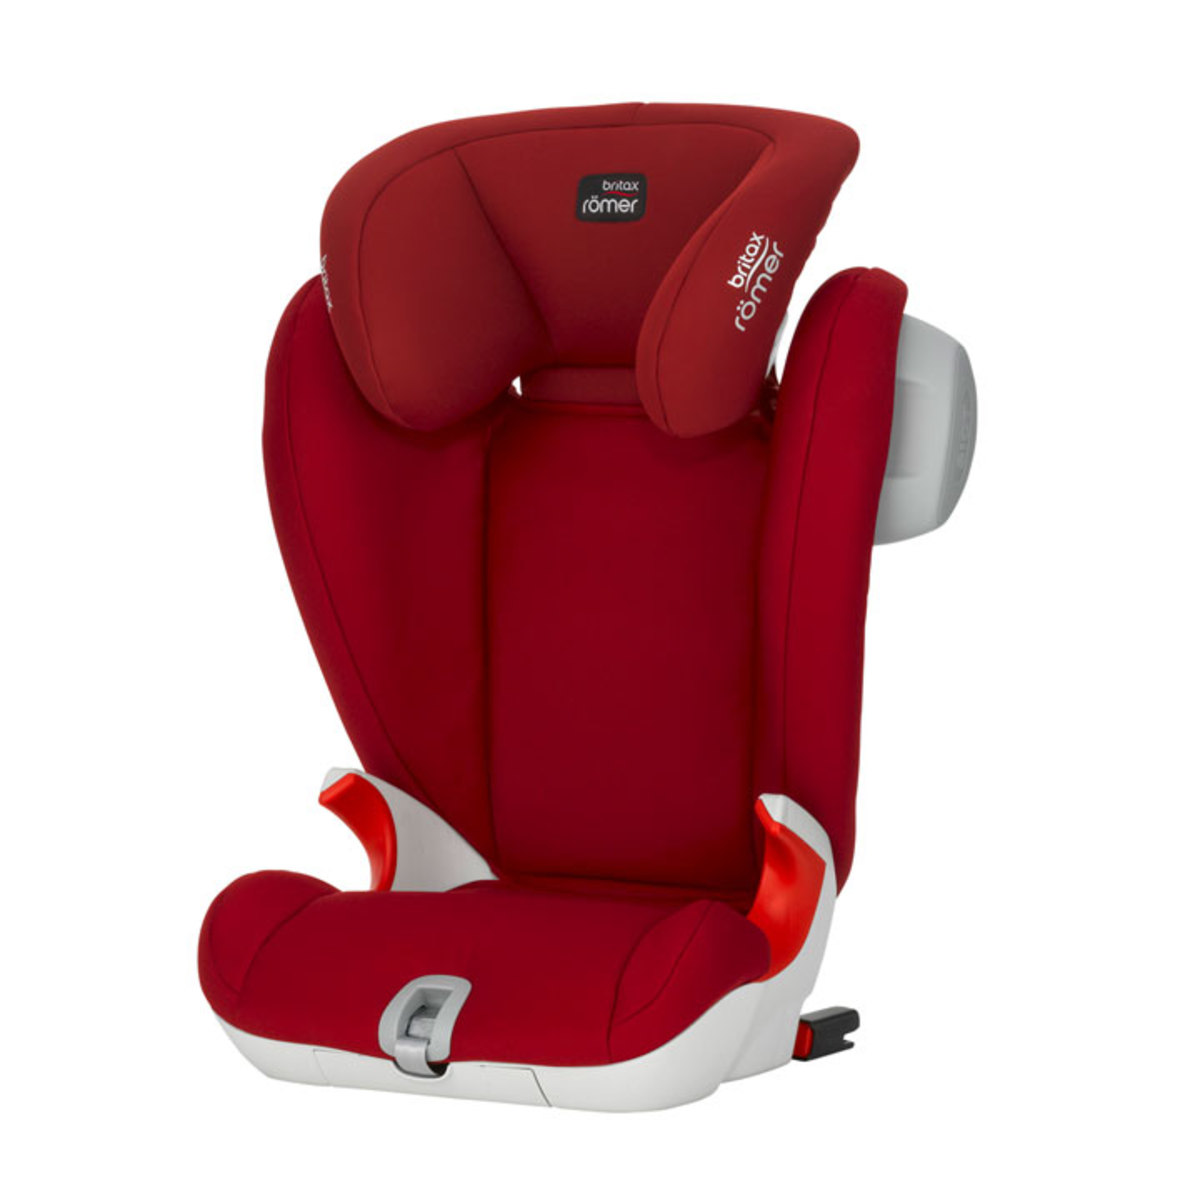 britax r mer si ge auto kidfix sl sict isofix groupe 2 3 flame red si ge auto et coque. Black Bedroom Furniture Sets. Home Design Ideas